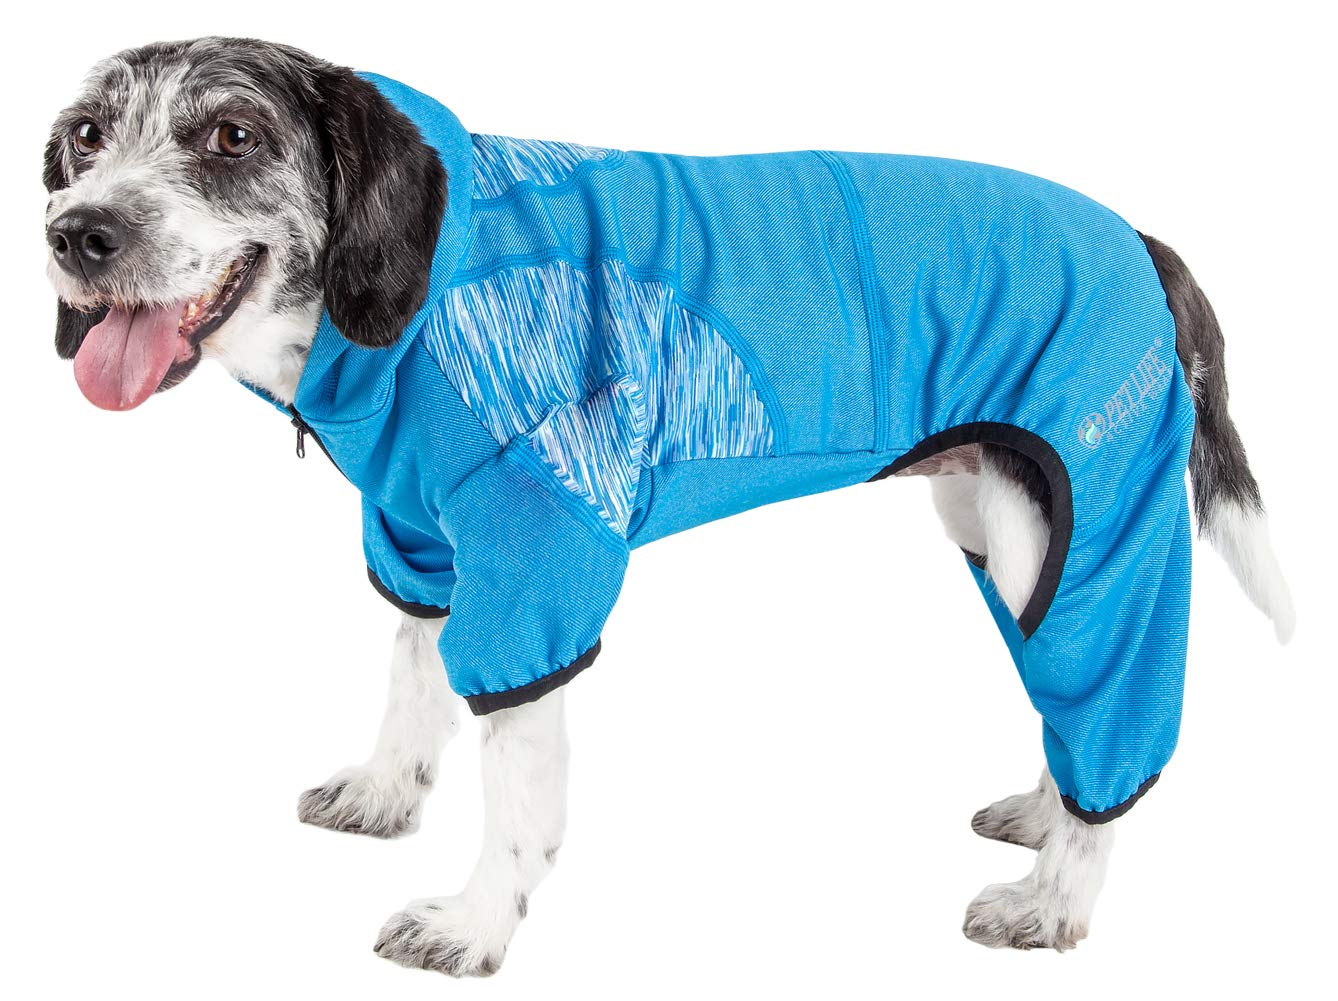 Pet Life Active 'Pawsterity' Heathered Performance 4-Way Stretch Two-Toned Full Bodied Hoodie, Large, Blue by Pet Life